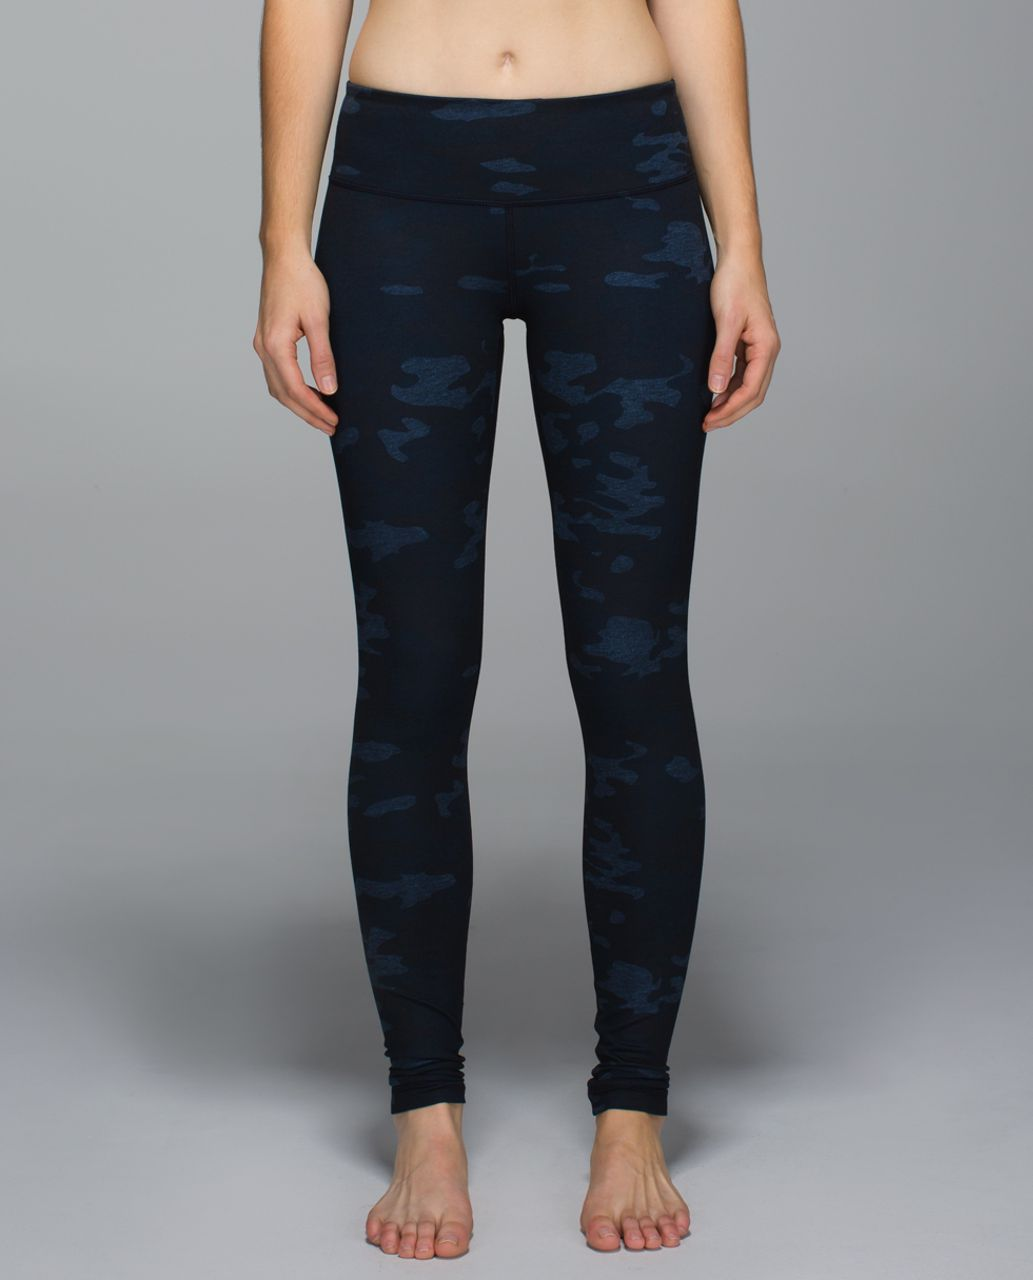 Lululemon Wunder Under Pant *Full-On Luon - Heathered Texture Lotus Camo Oil Slick Blue